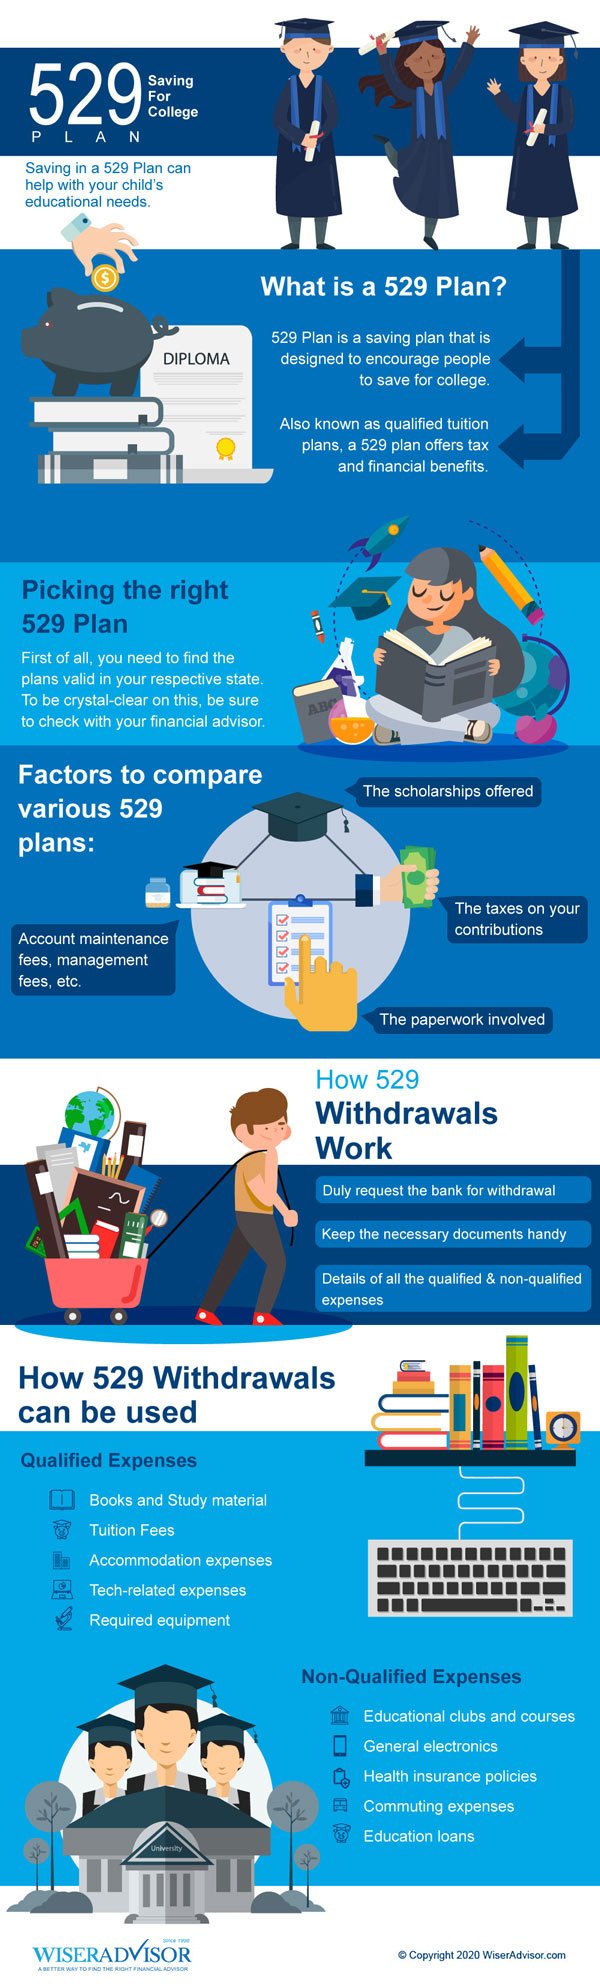 529 Plans: Picking the Right 529 Plan & Withdrawals